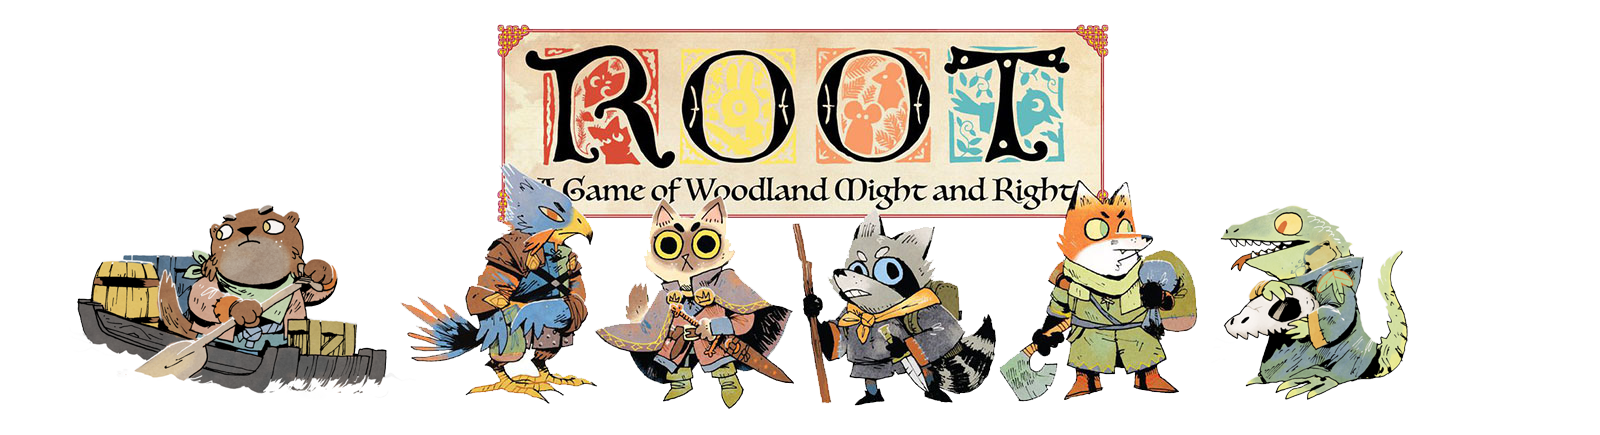 Root, a woodland game of might and right!